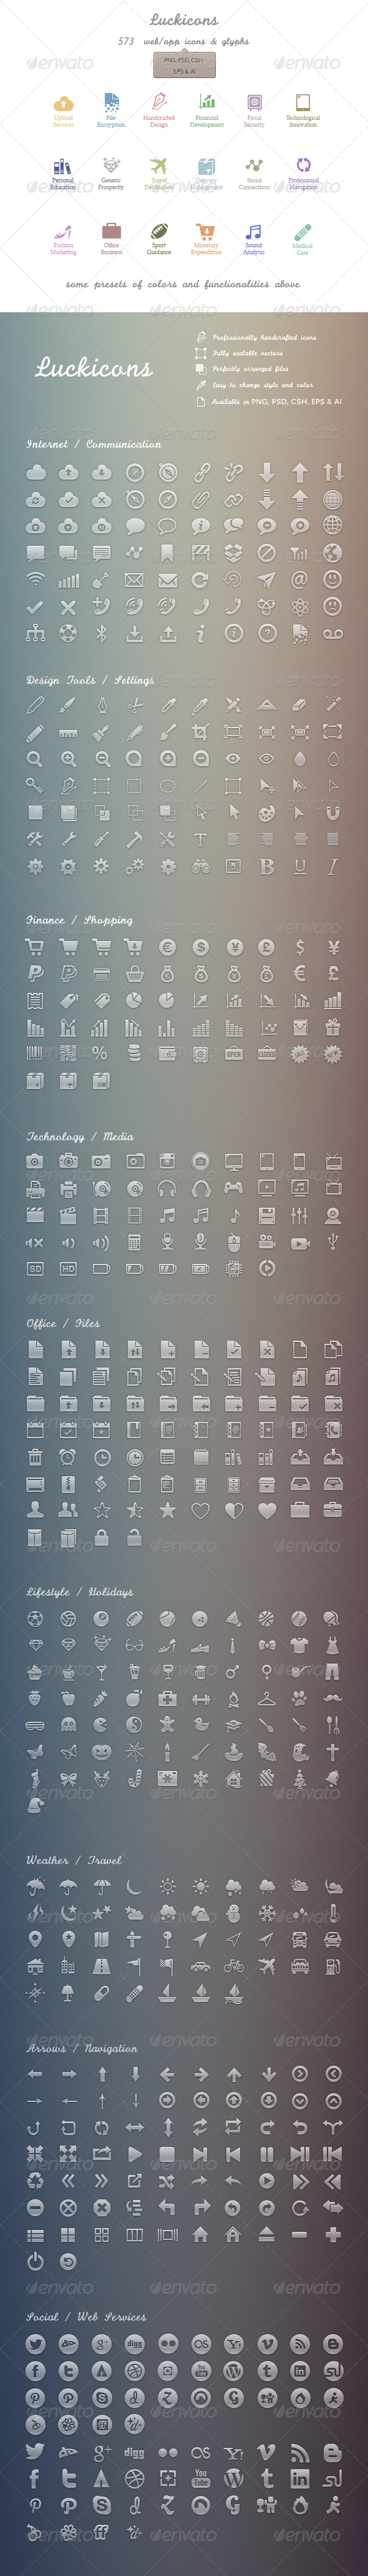 Luckicons - 579 handgrafted vectors icons | PSD... - Web Icons